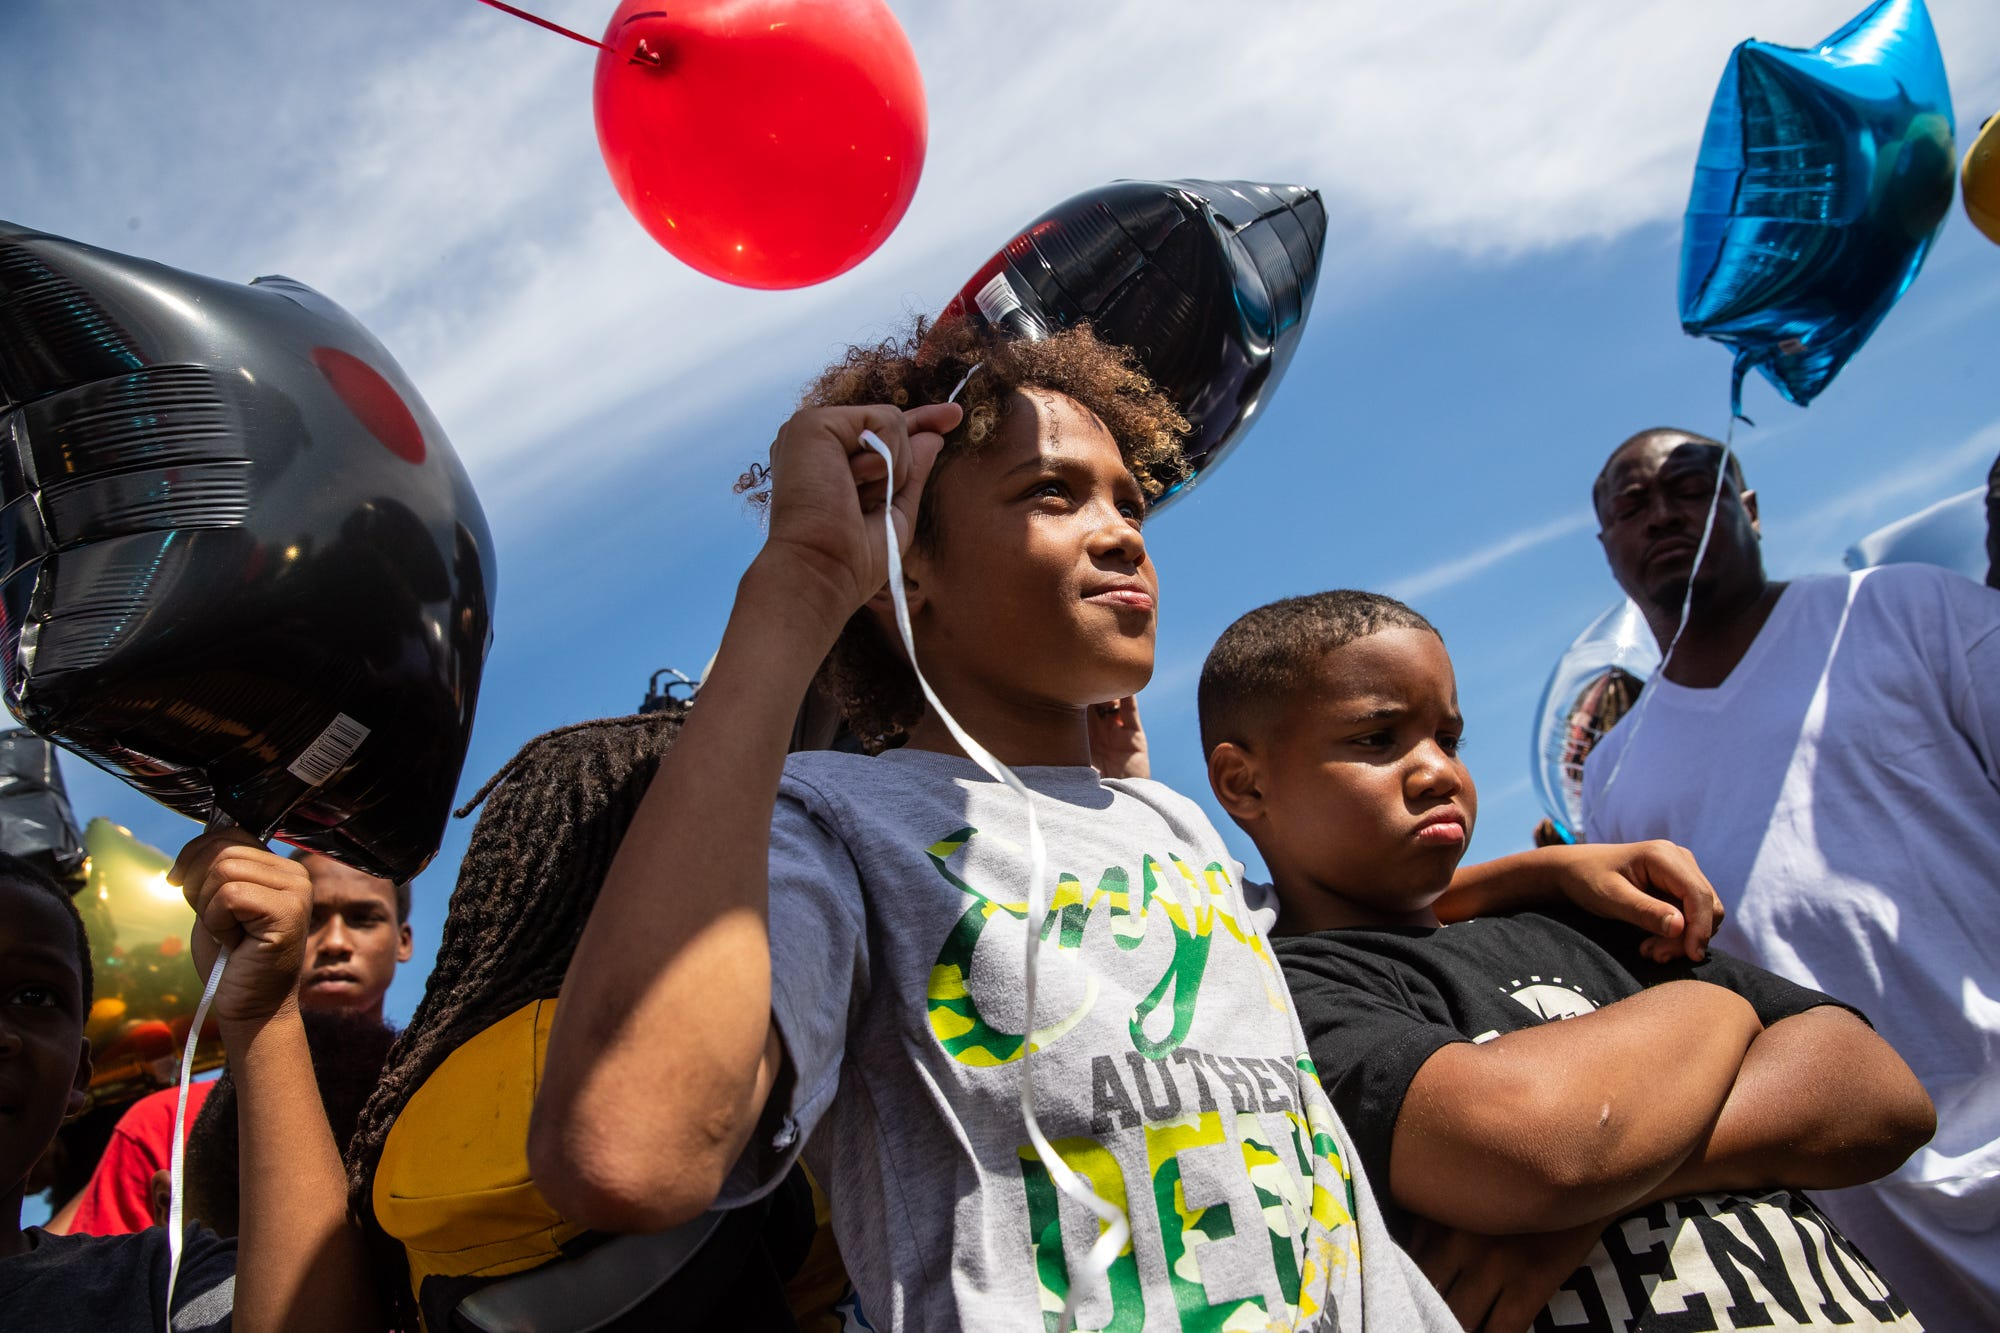 """Cam Harden holds a balloon and listens as family and friends remember former Indy Steelers football player DeShaun Swanson during a balloon release in his honor at Watkins Park on Sunday, Sept. 22, 2019. Swanson, 10, was murdered in a drive-by shooting in the Butler-Tarkington neighborhood in 2015, not far from the team's practice field. The case remains unsolved. """"I definitely miss him every day,"""" said coach Donnell Hamilton. """"He was probably the littlest guy on the field with the biggest heart. He played for two years and the year that happened was in September and it crushed us."""" The team gathers yearly to honor Swanson with a balloon release and football games. """"His memory certainly lives on. Each of the kids there has a story about him or a story about his life and you realize with DeShaun, right down the street from the park, that's a reality for these kids and that's what I think normalizes it. They see that stuff, what is the solution?"""""""